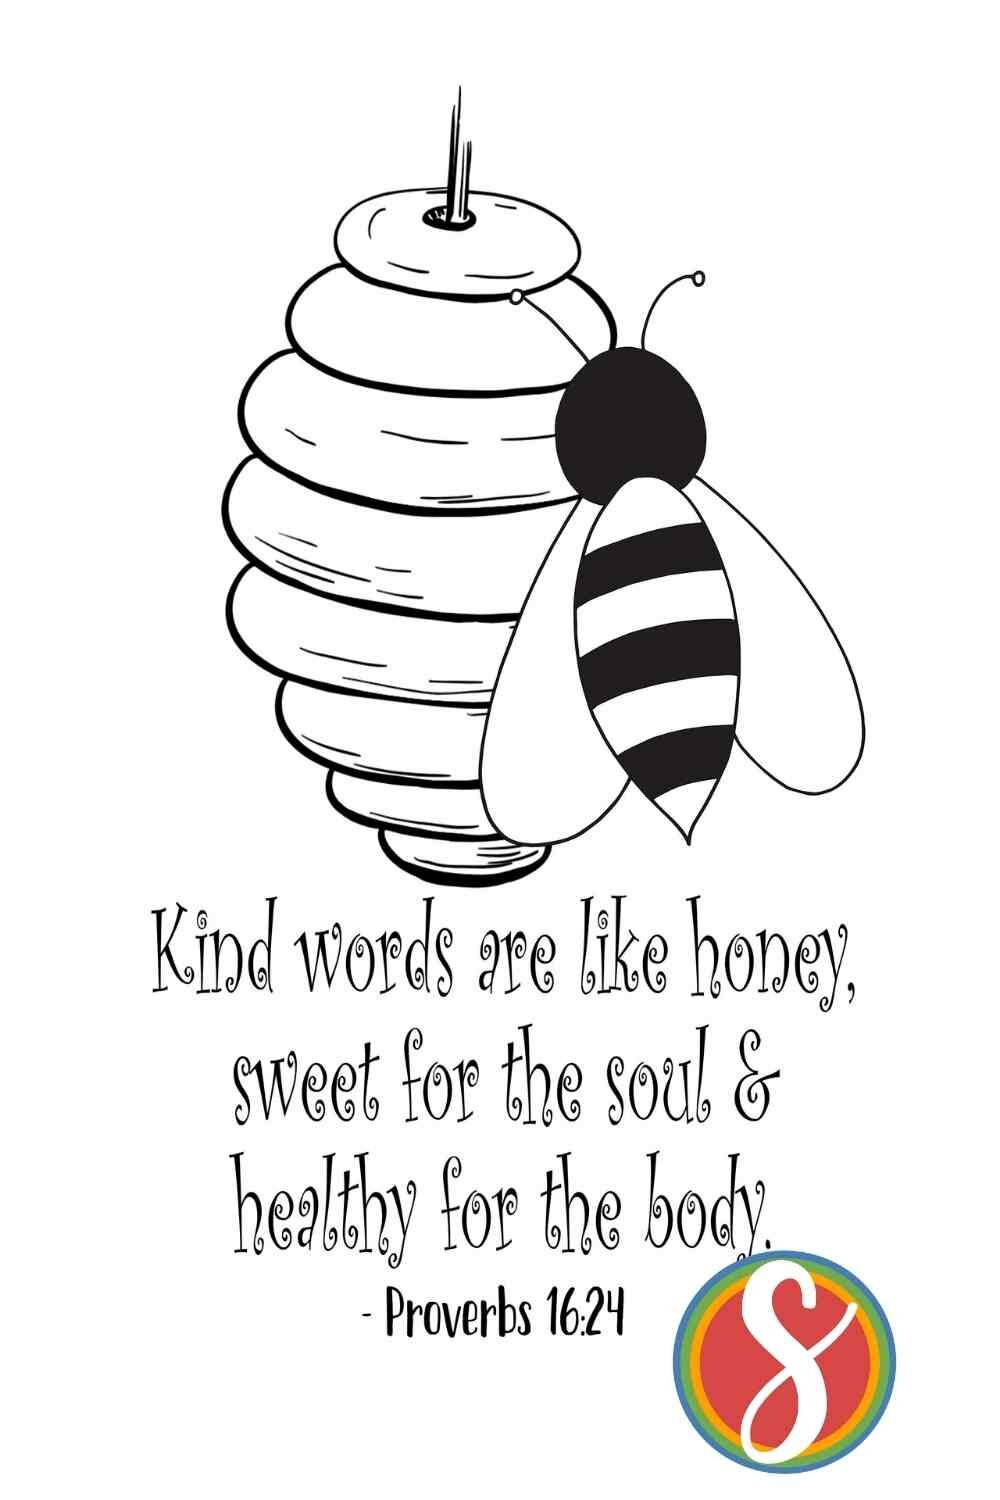 Free kindness printable coloring page - proverbs 16:24 with a bee